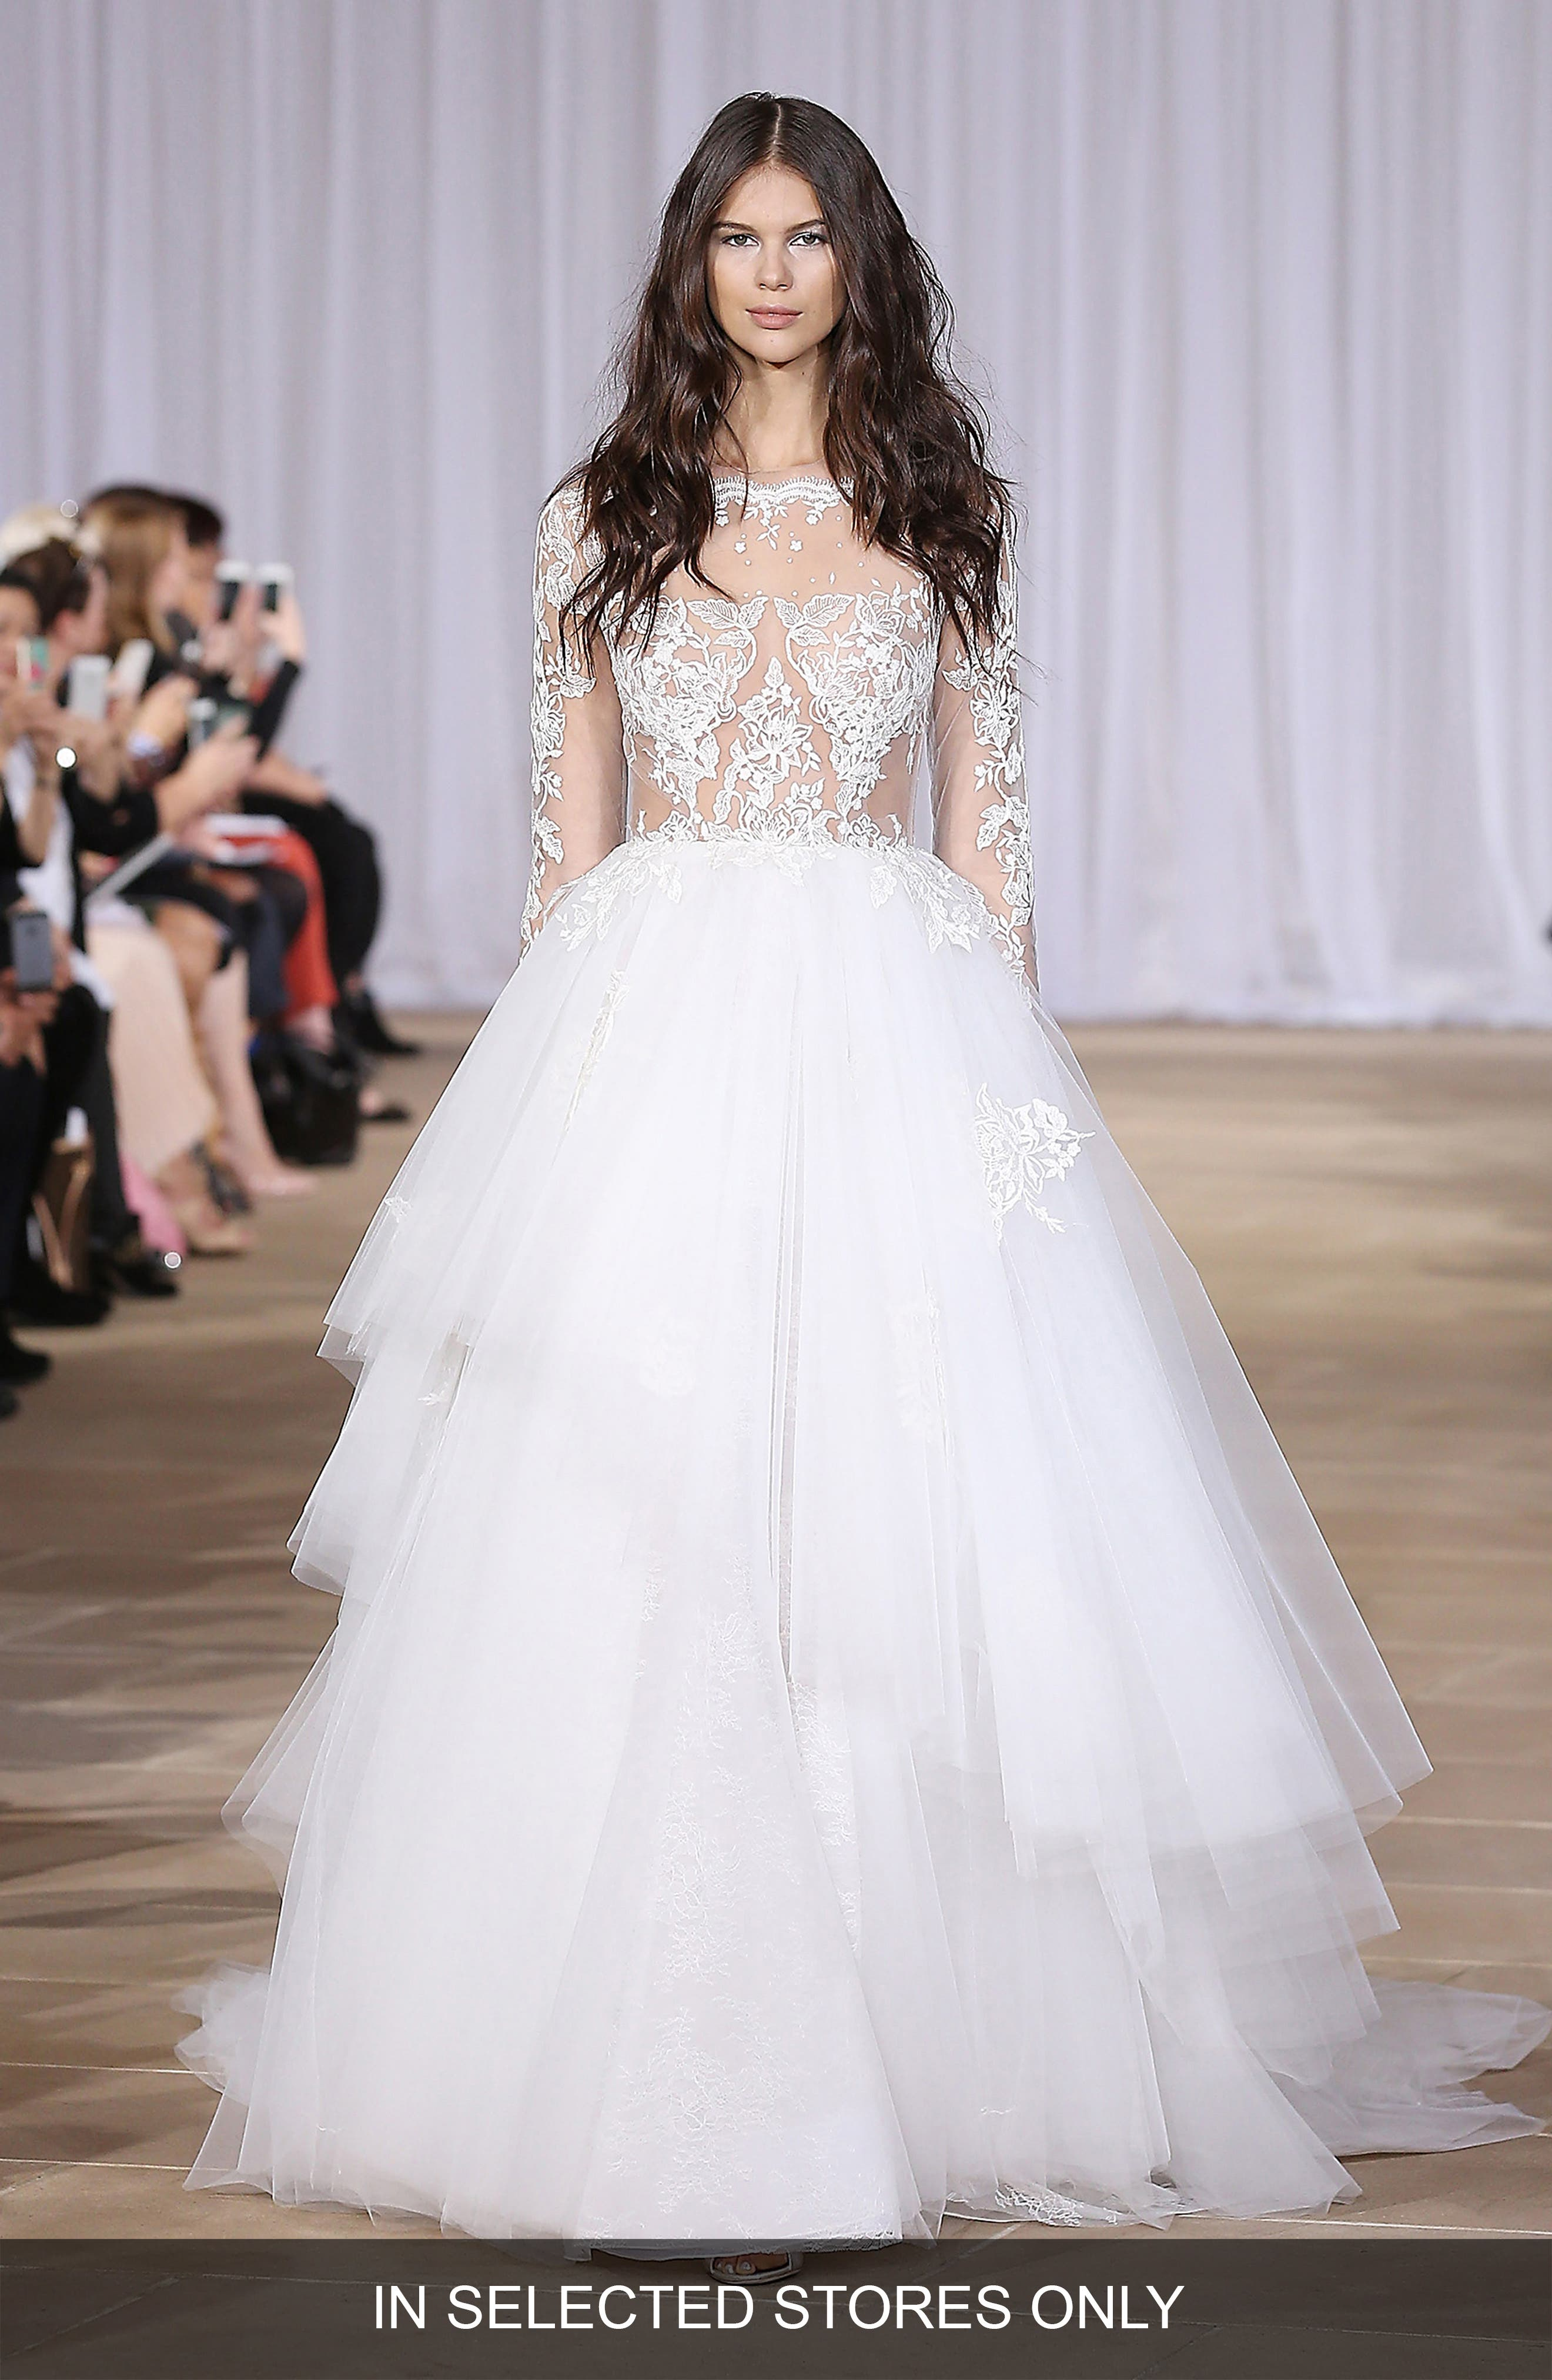 Aliora Embroidered Illusion & Tulle Ballgown,                             Main thumbnail 1, color,                             Off-White